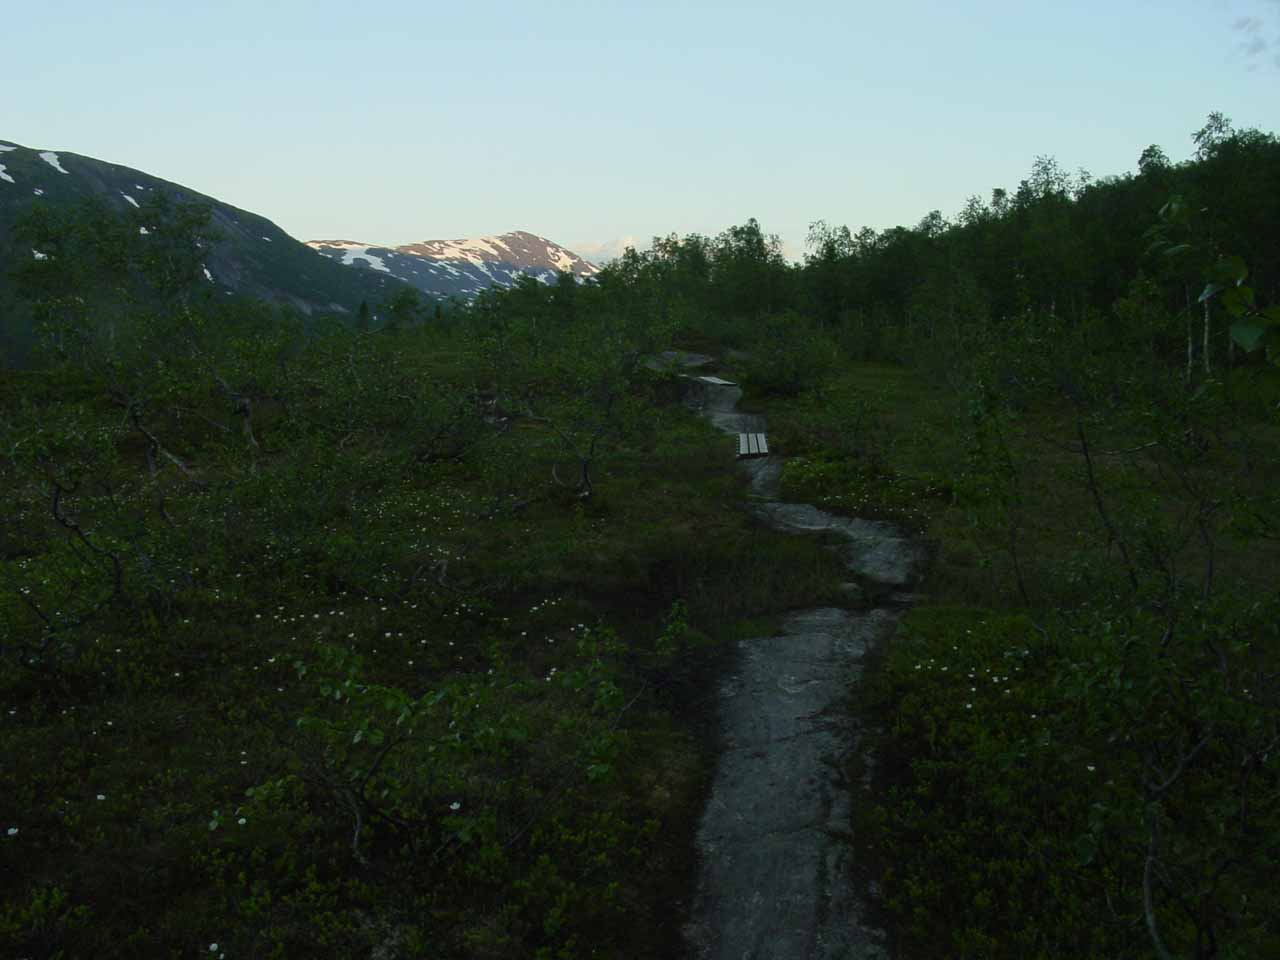 The trail as it started to get dark as I was returning to the trailhead at nearly 11pm